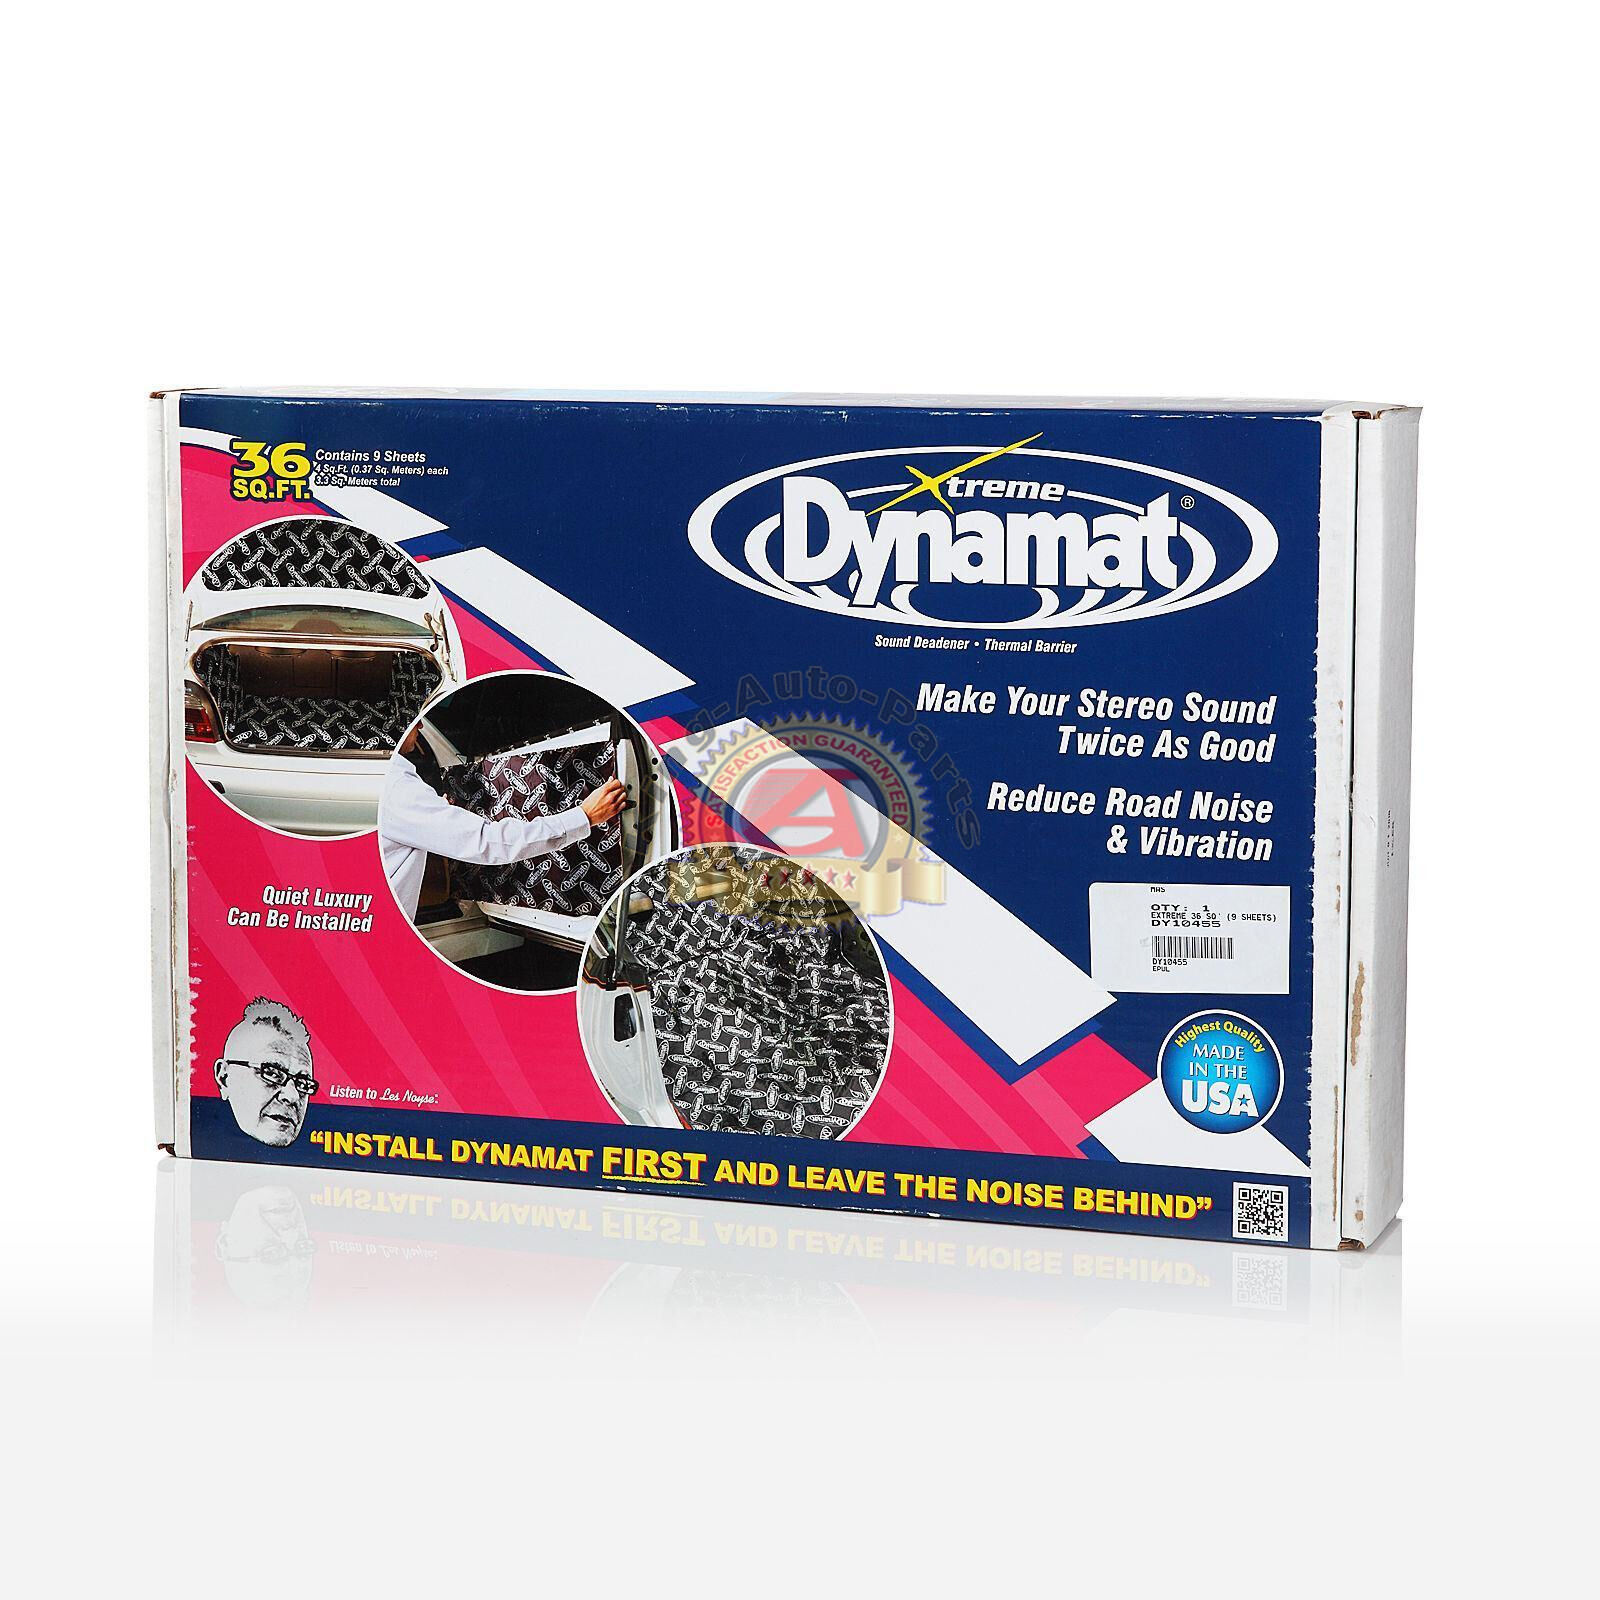 Dynamat 19405 18 x 32 x 0.067 Thick Self-Adhesive Sound Deadener with Xtreme Trunk Kit, Set of 5